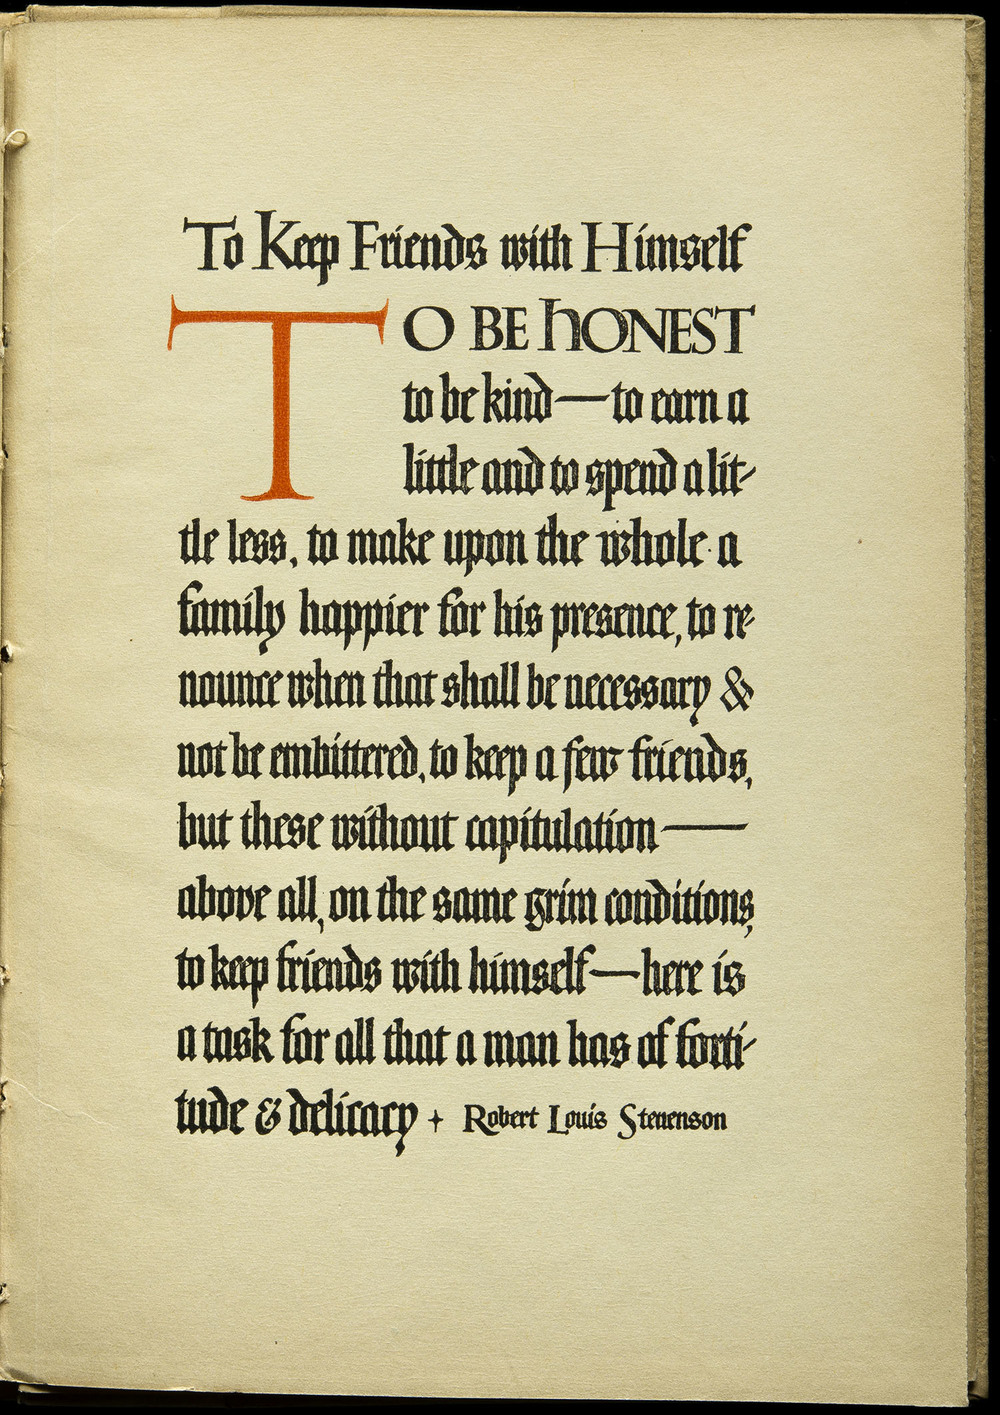 The Meaning of Friendship  by Robert Louis Stevenson, Canterbury, Chicago, 1909, 25.4 x 17.8 cm